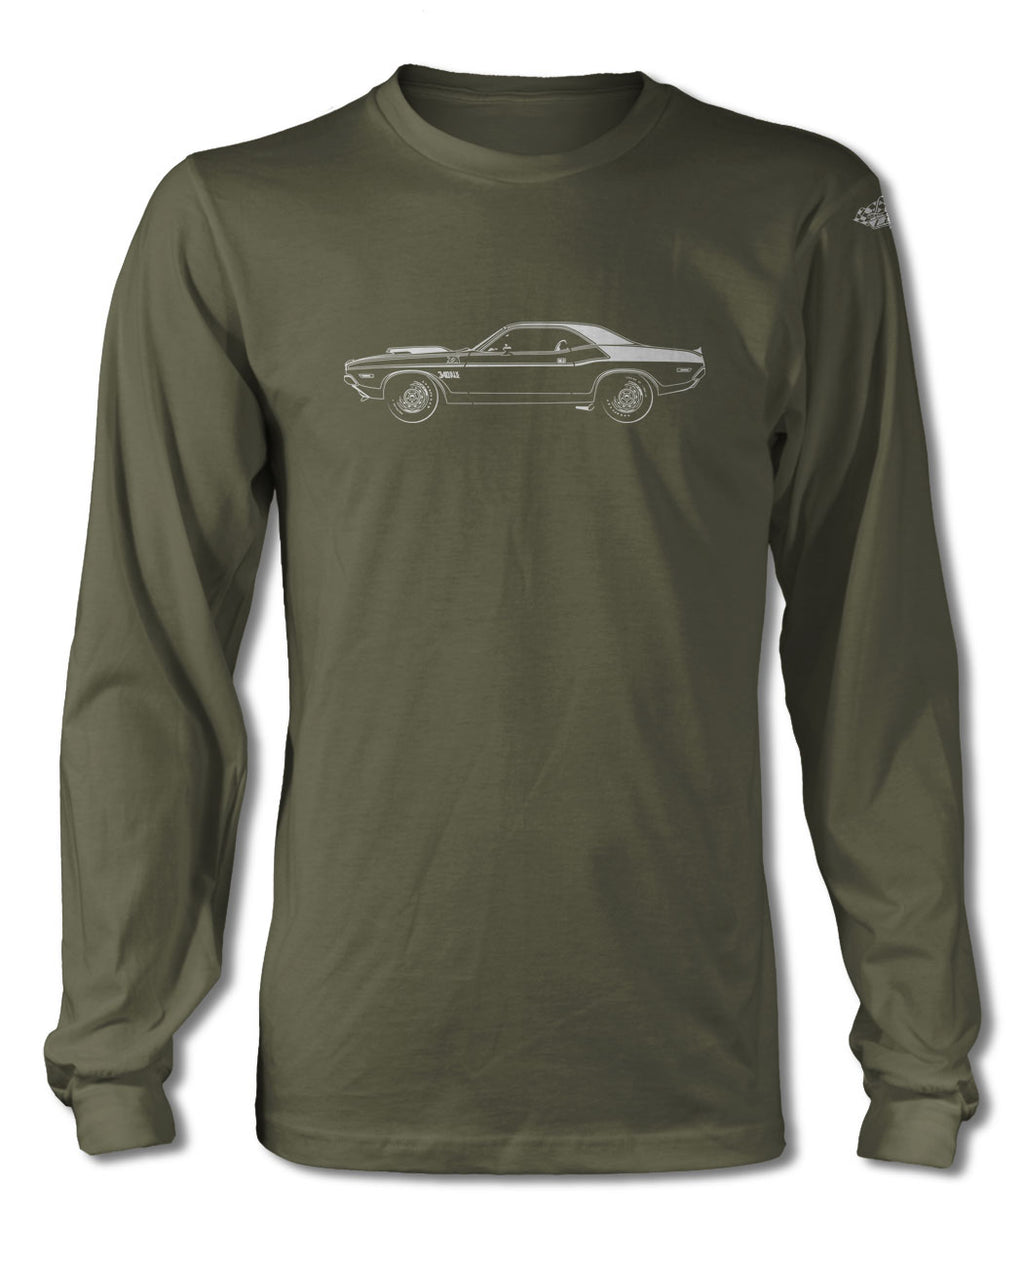 1970 Dodge Challenger TA 340 Coupe T-Shirt - Long Sleeves - Side View